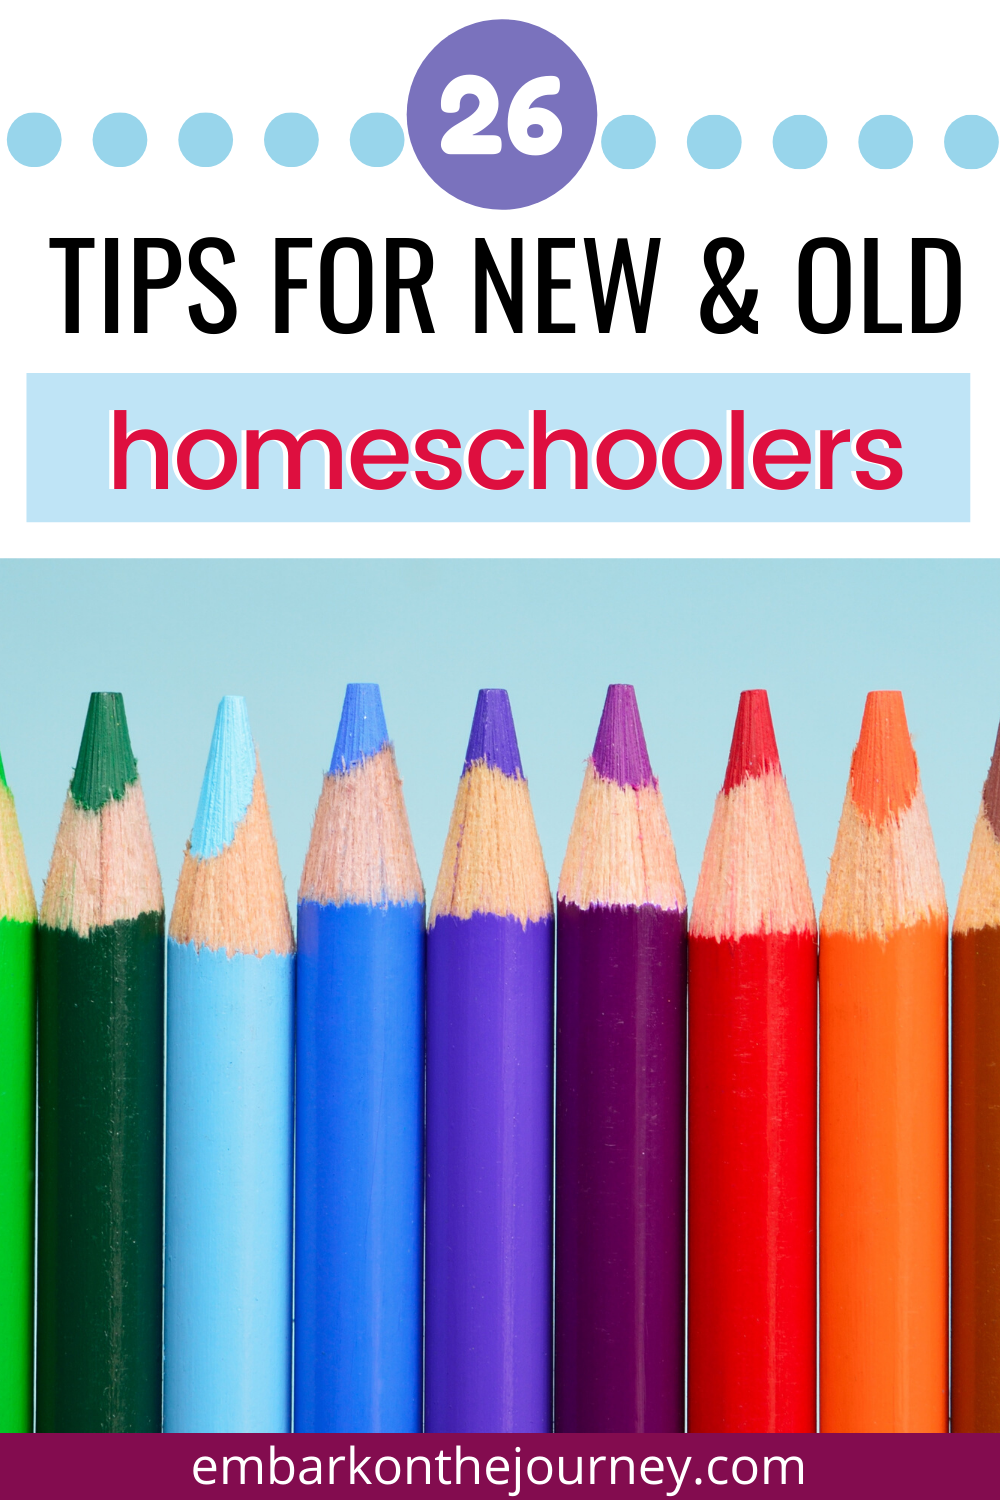 Discover 26 homeschooling tips for both new homeschoolers and seasoned ones. Find encouragement, tips, and ideas from A to Z!